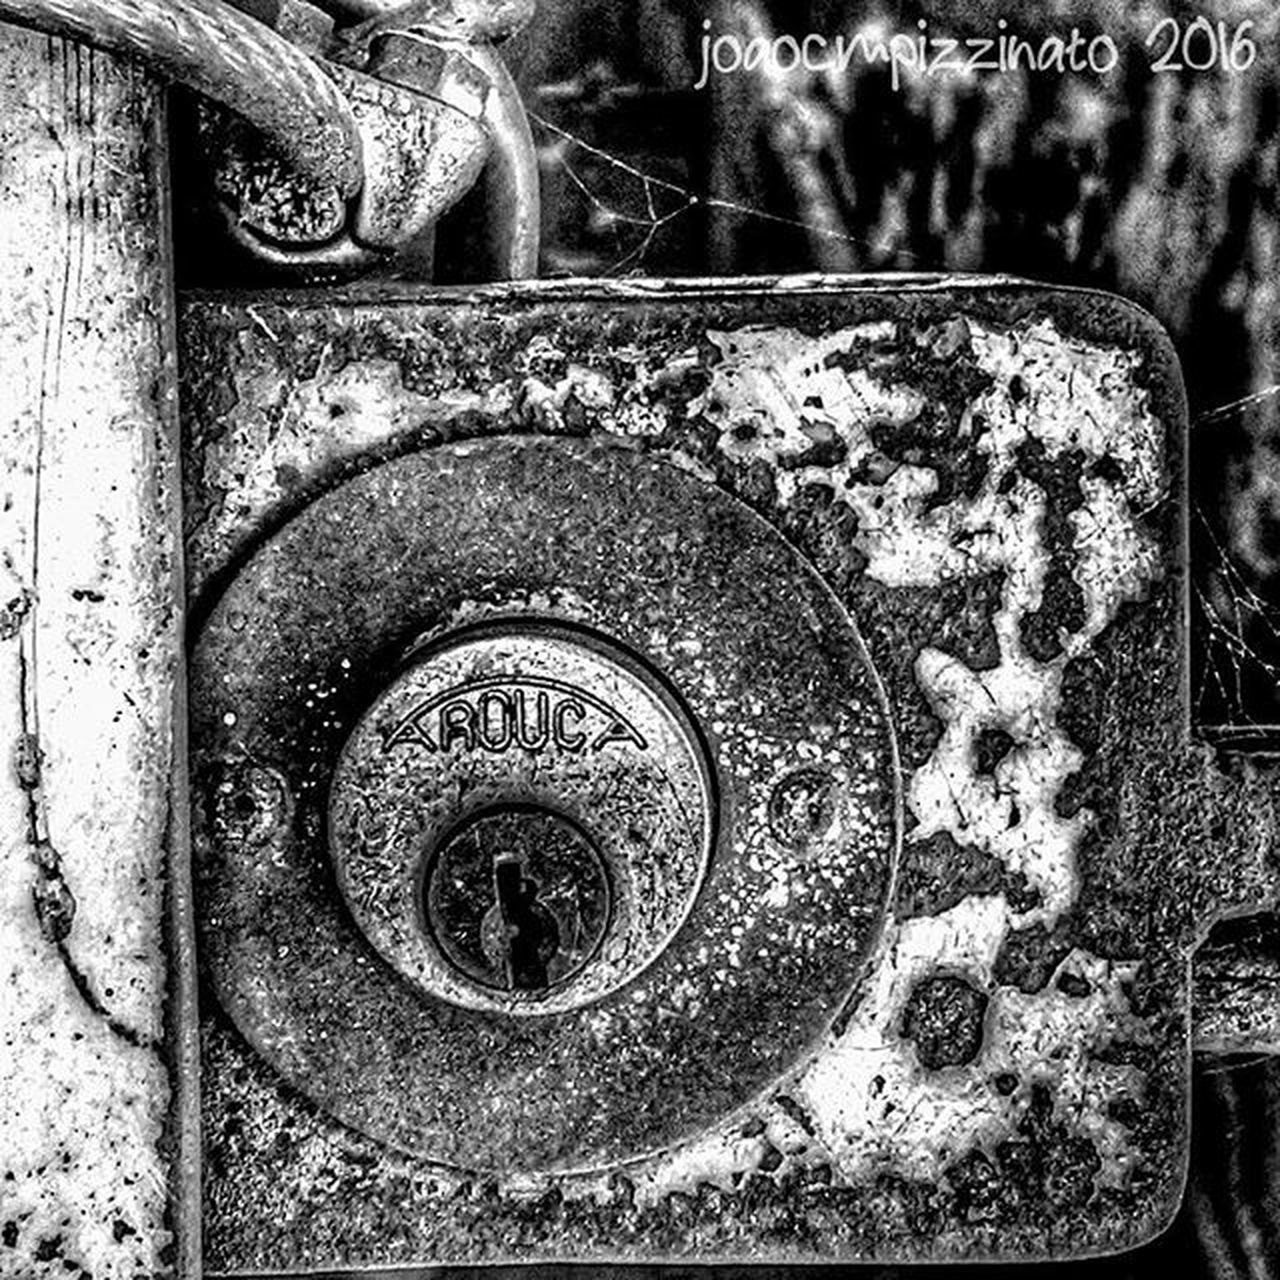 Rustlord_bnw Rustlord Rustlord_texturaunique Flaming_rust Foto_blackwhite Ig_contrast_bnw Amateurs_bnw Bnwmood Bnw_kings Bnw_planet Bnw_captures Top_bnw Bnw_lombardia Instapicten Top_bnw_photo Bnw_life_shots Urbexbrasil Urbexsp Streetphoto_brasil